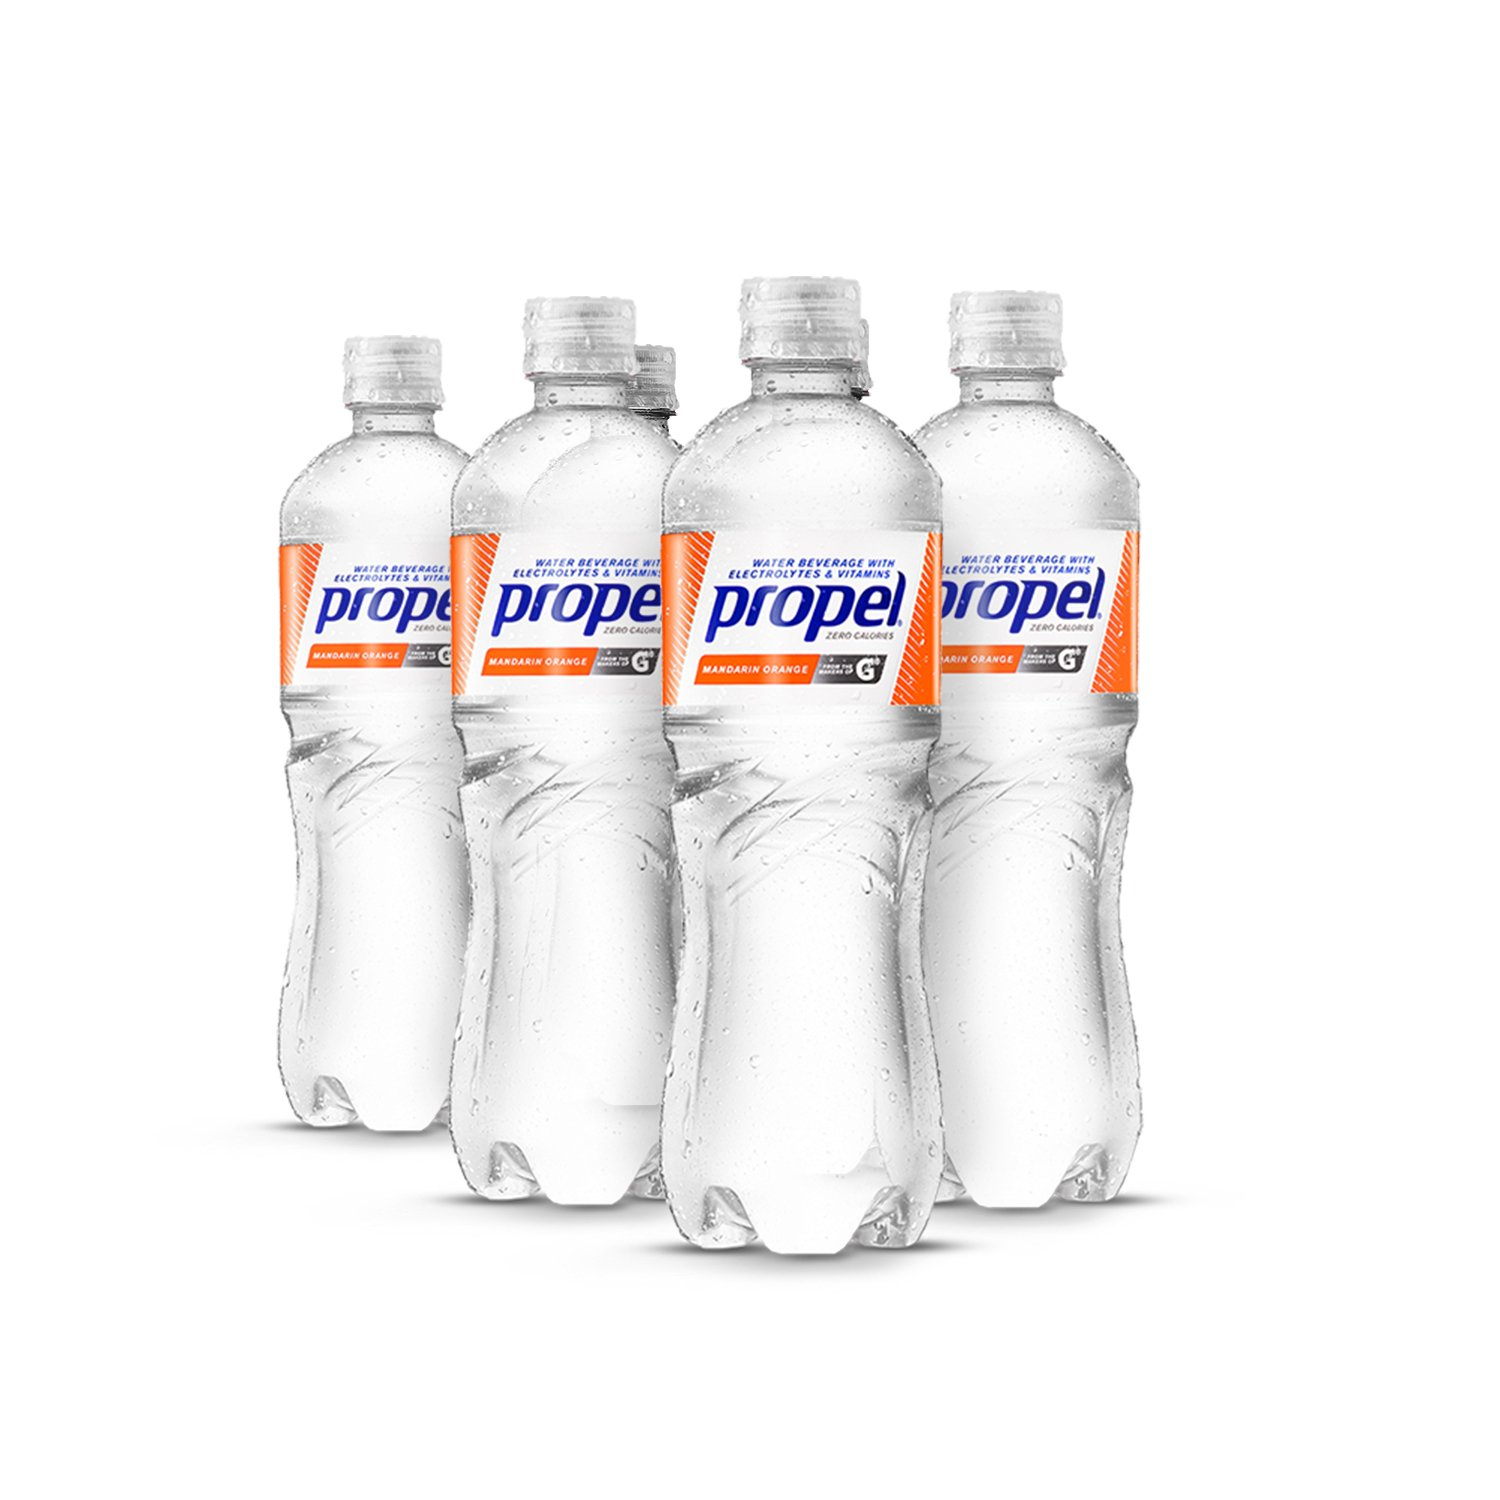 Propel Water Mandarin Orange Flavored Water With Electrolytes, Vitamins and No Sugar 16.9 Ounces (Pack of 6)